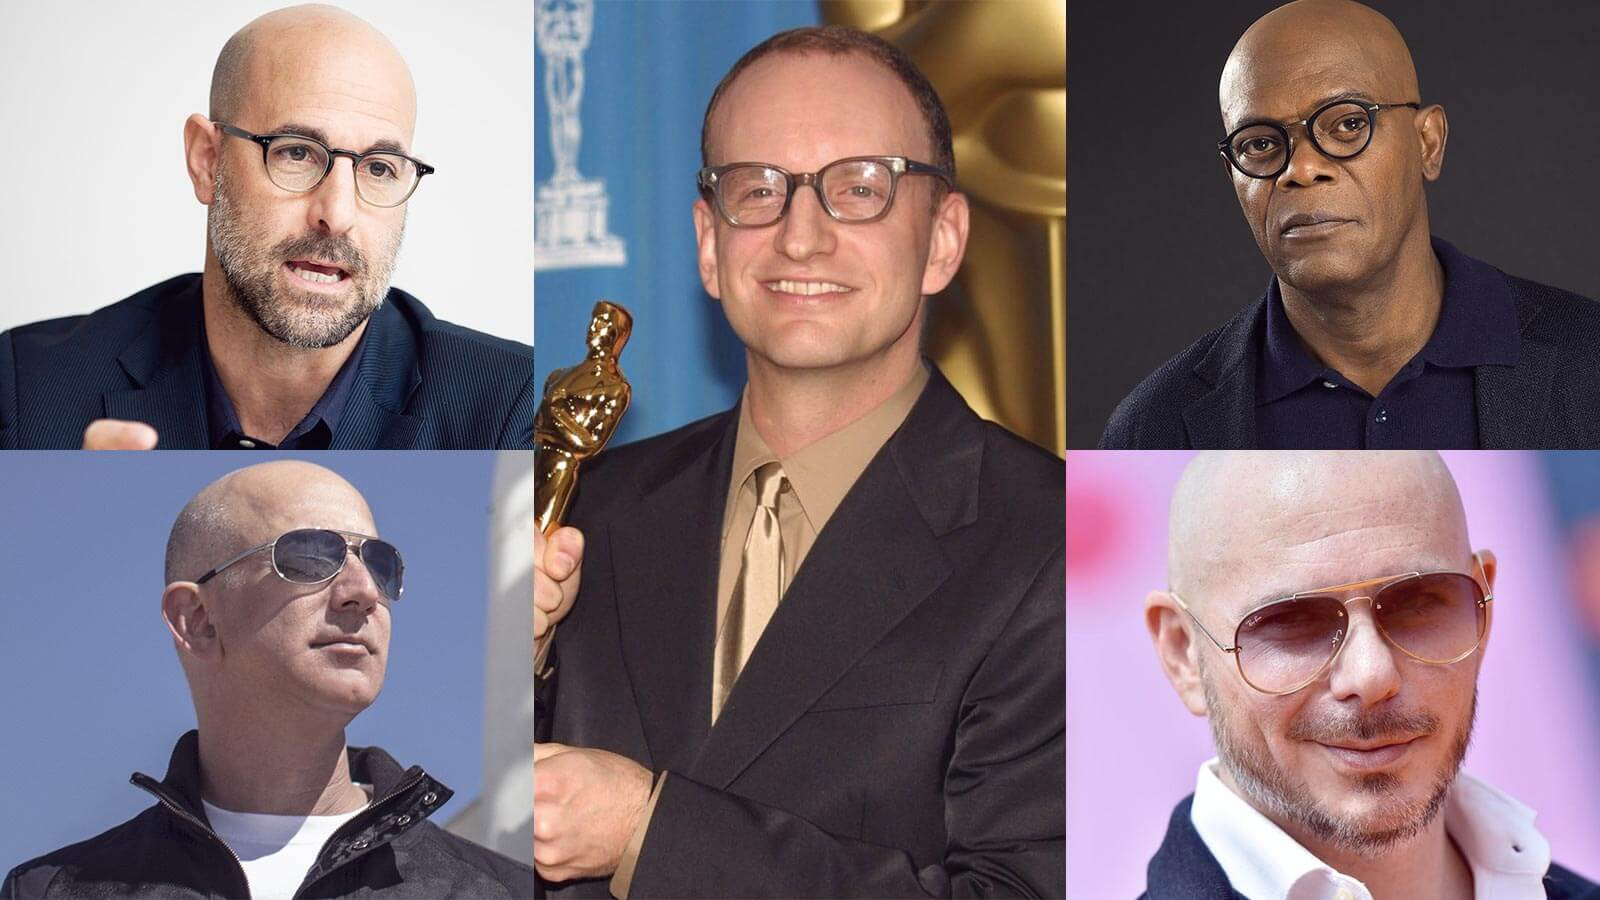 Eyewear for bald men